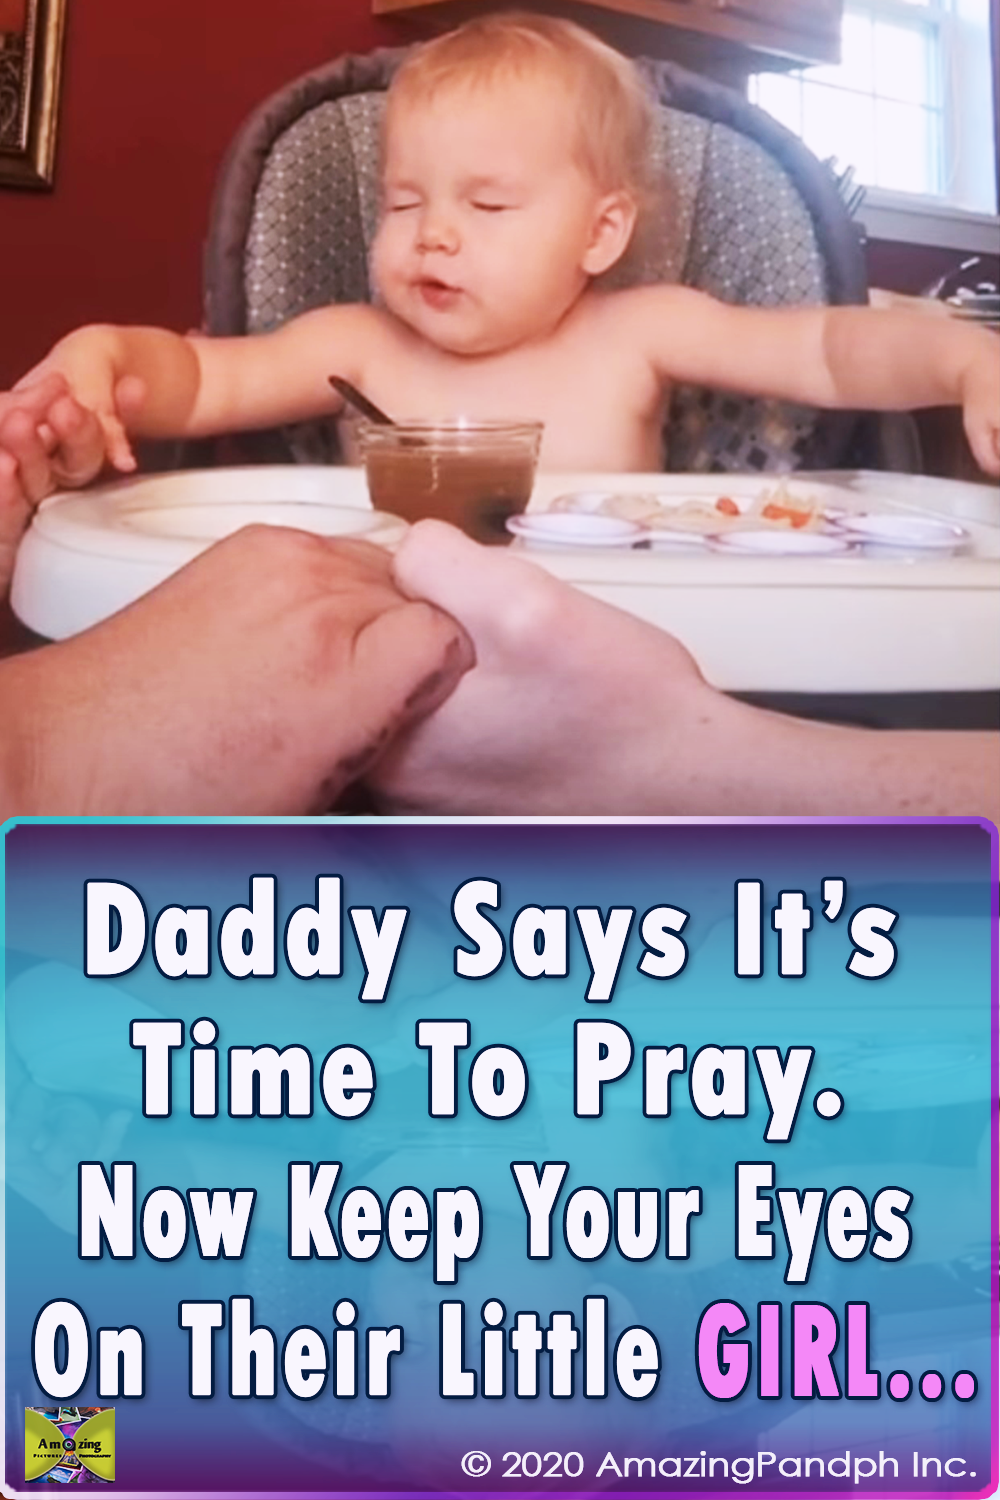 Little Girl, daddy, pray, cute, cuteness overload, baby, heartwarming, adorable, meal, night,